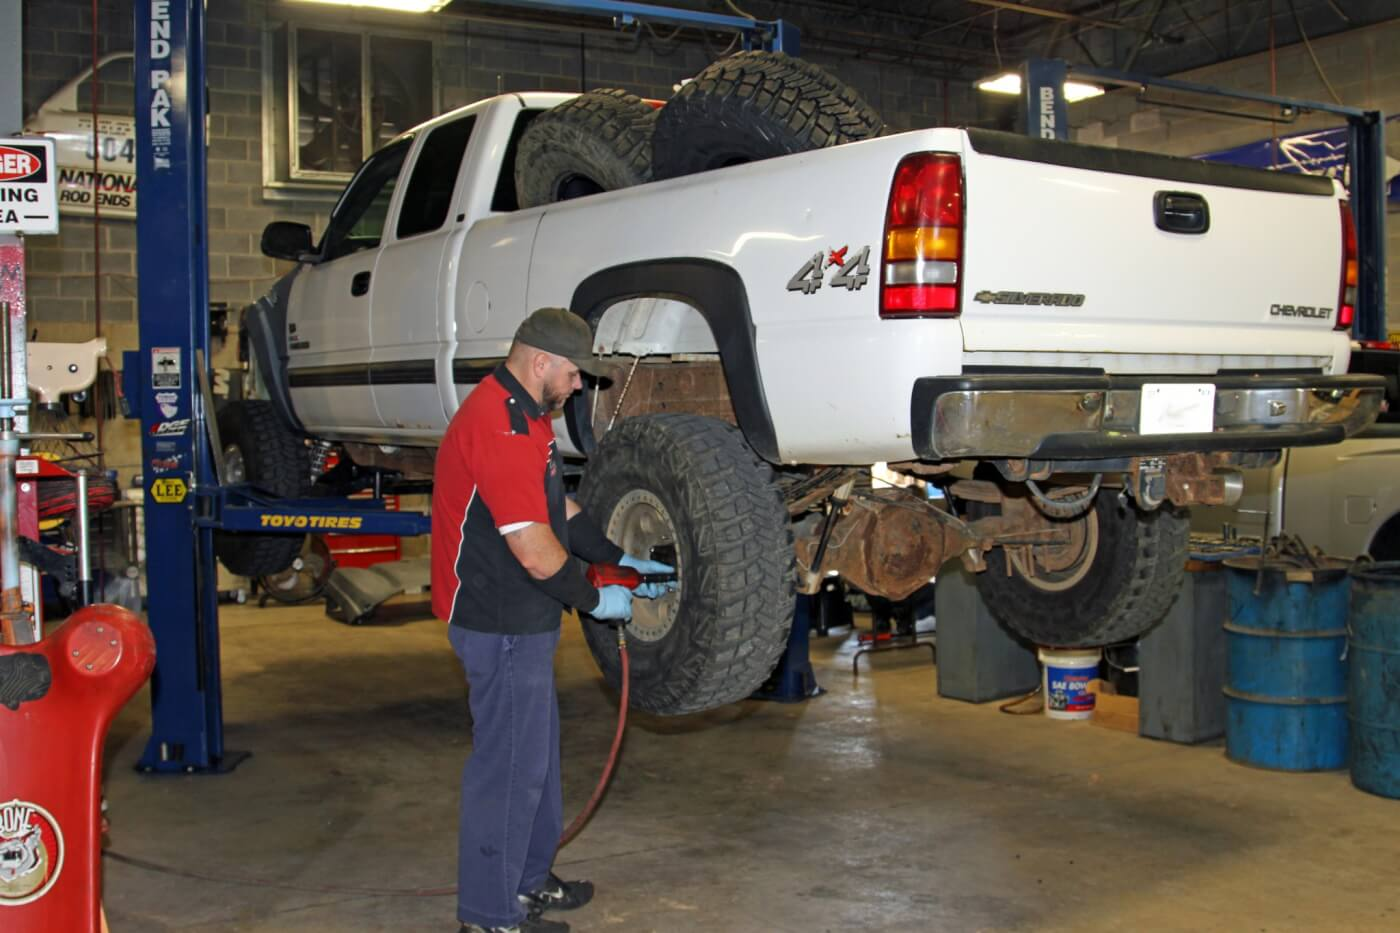 1. To start the Ultimate Rear Axle Build Jason Nelson puts the big Duramax truck on one of the twin post lifts in the RPM Offroad service bay and then removes the rear wheels.